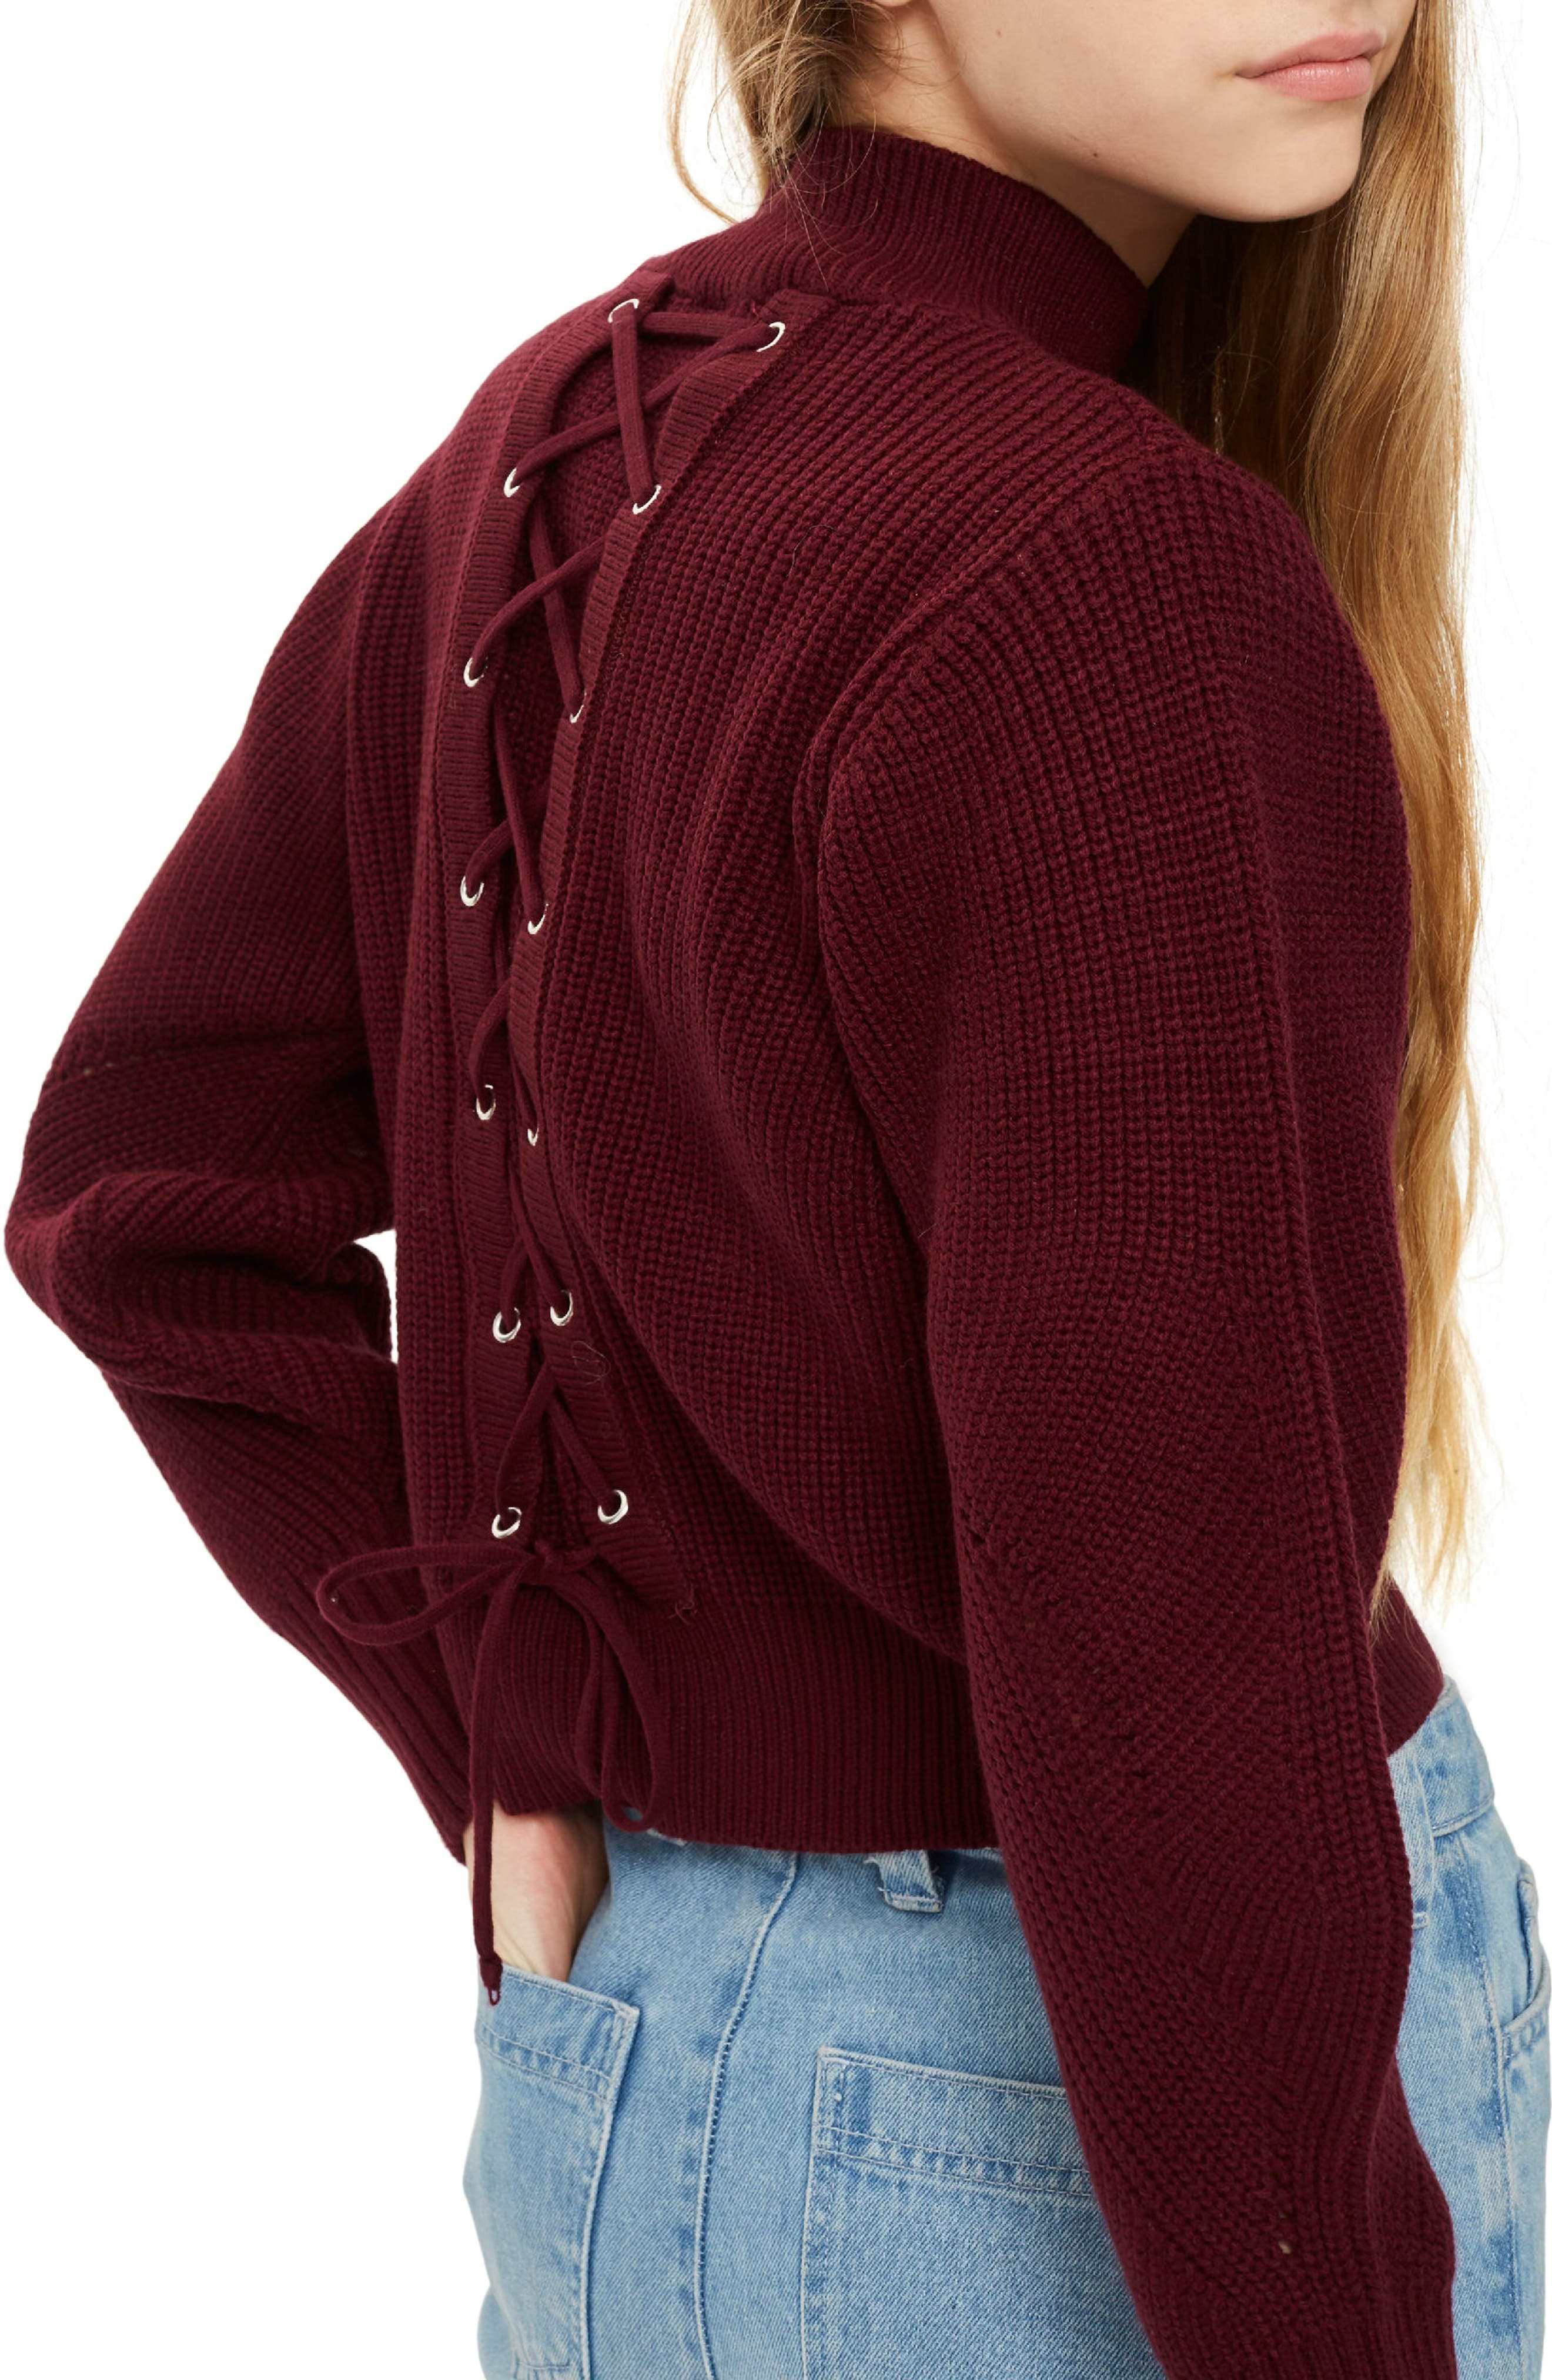 Lace-Up Back Sweater,                             Alternate thumbnail 2, color,                             640